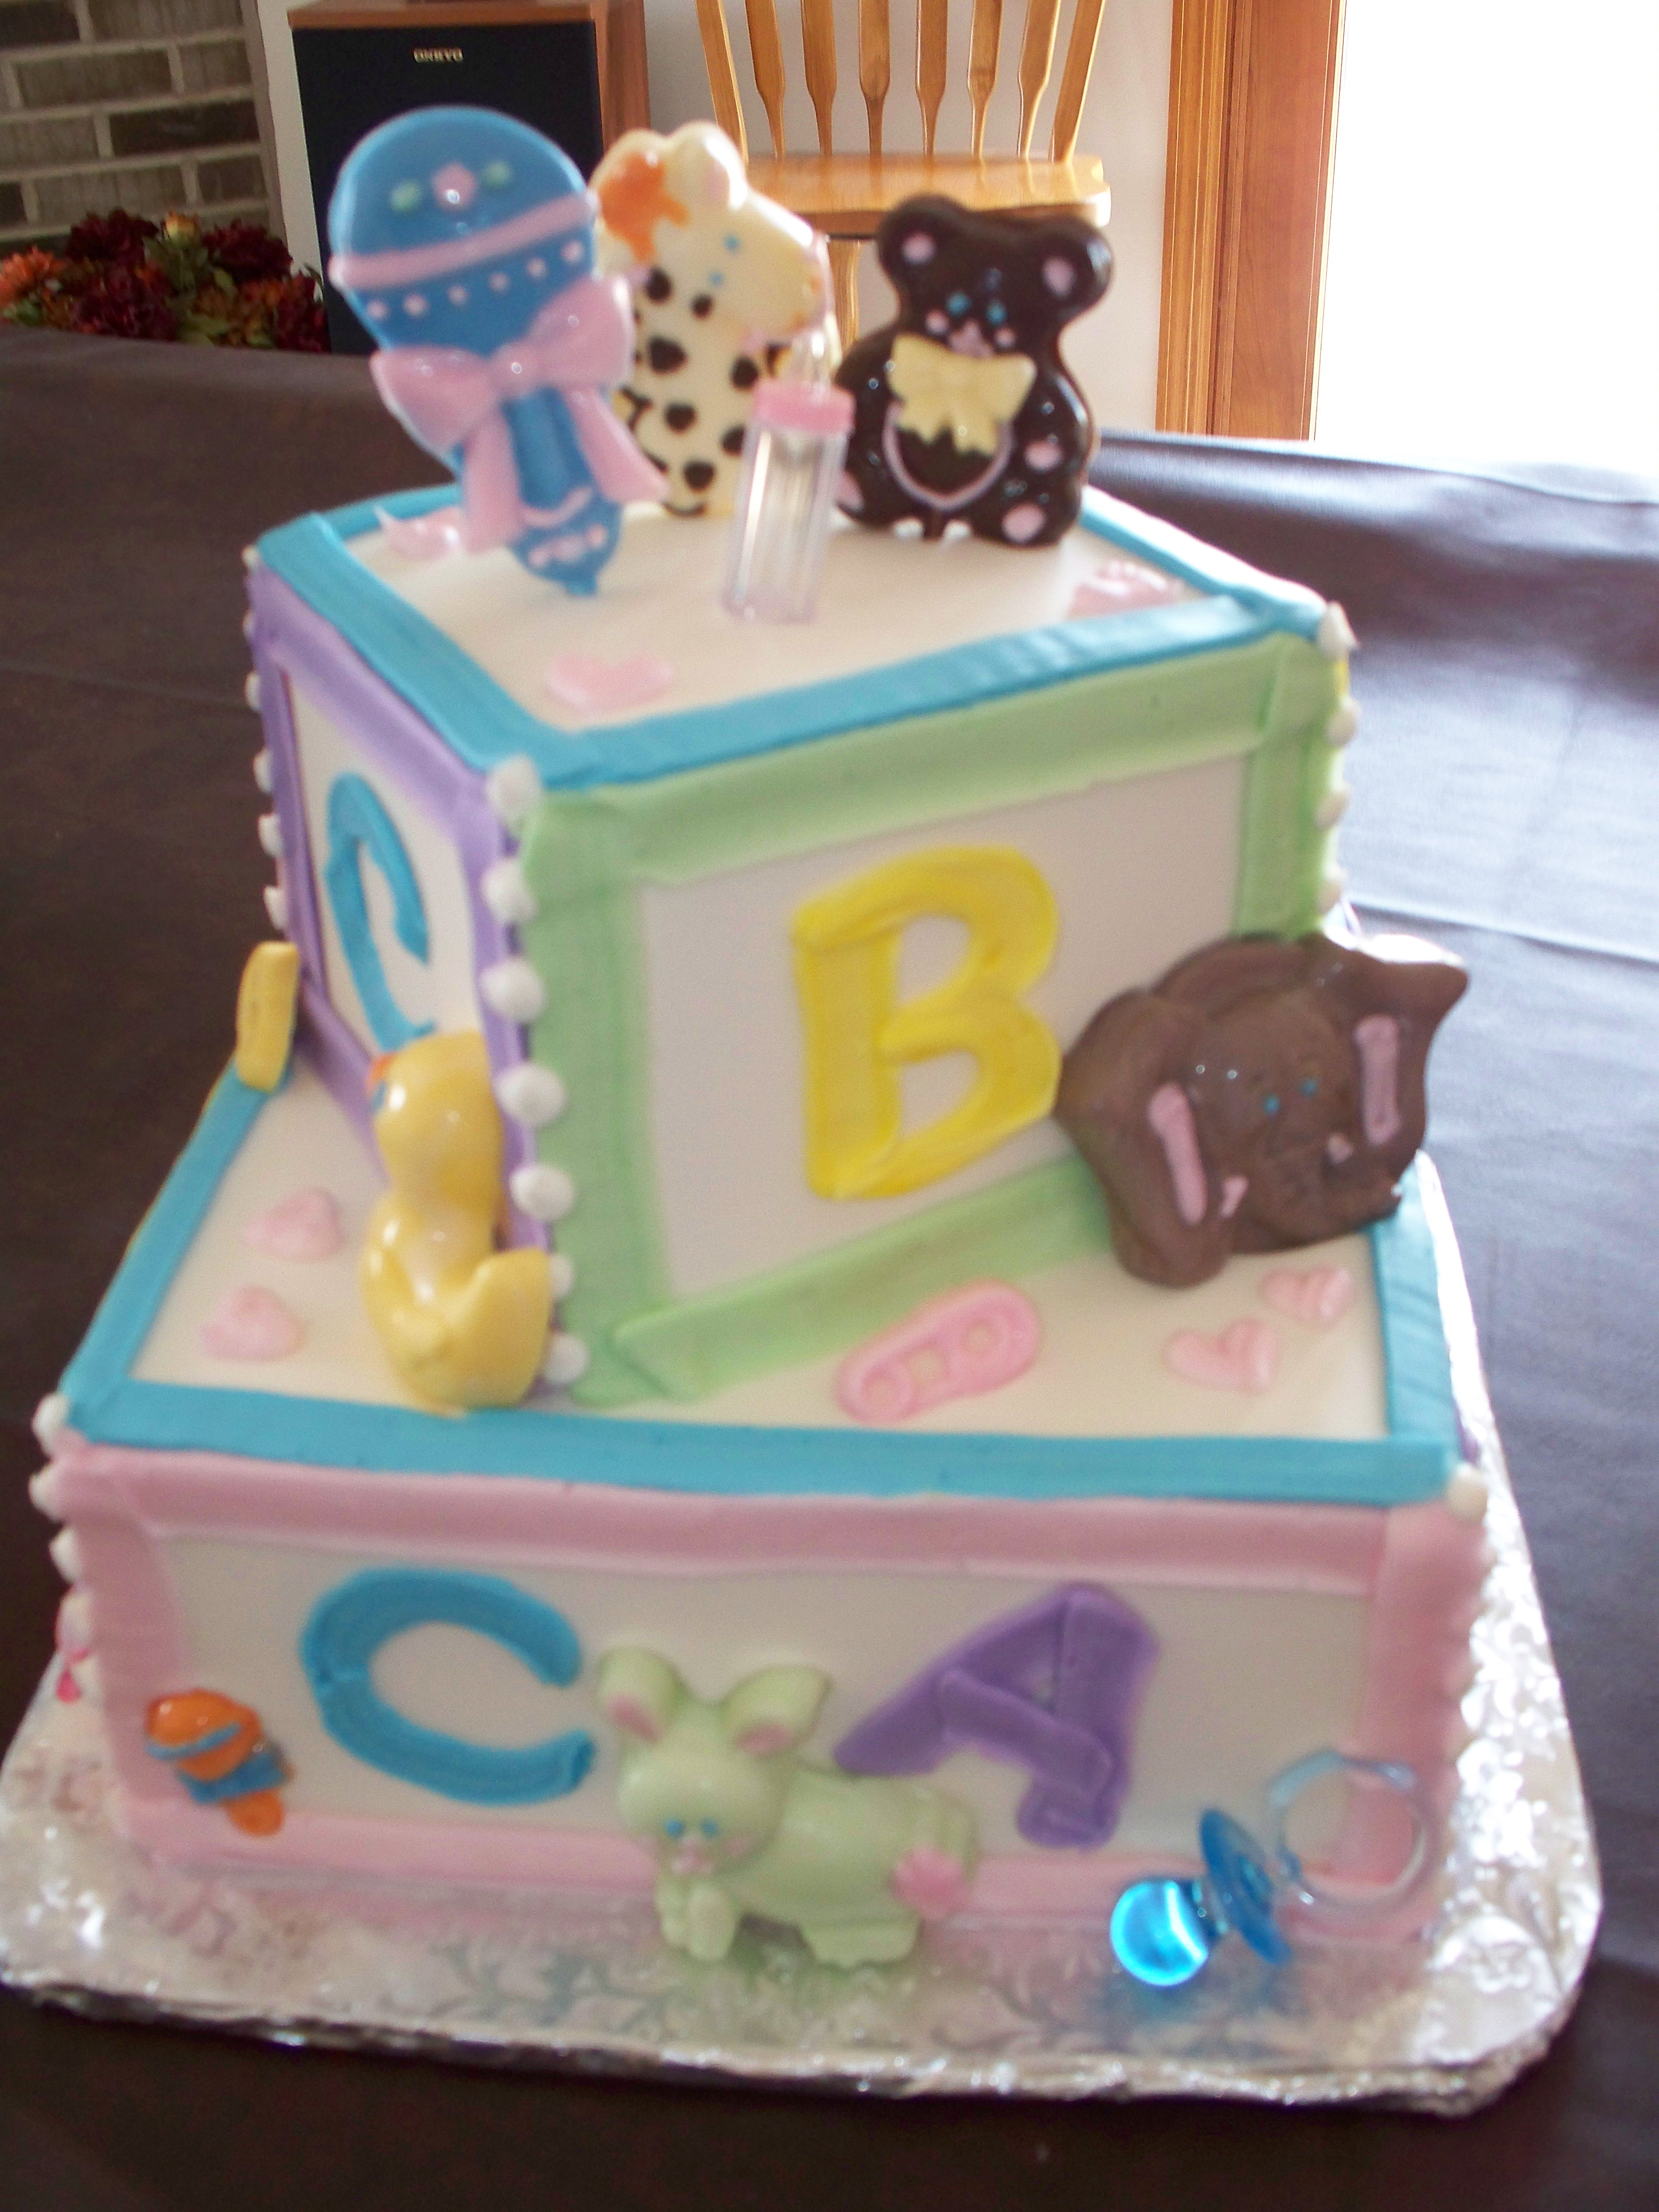 Cake images, Sheet cakes and A girl on Pinterest